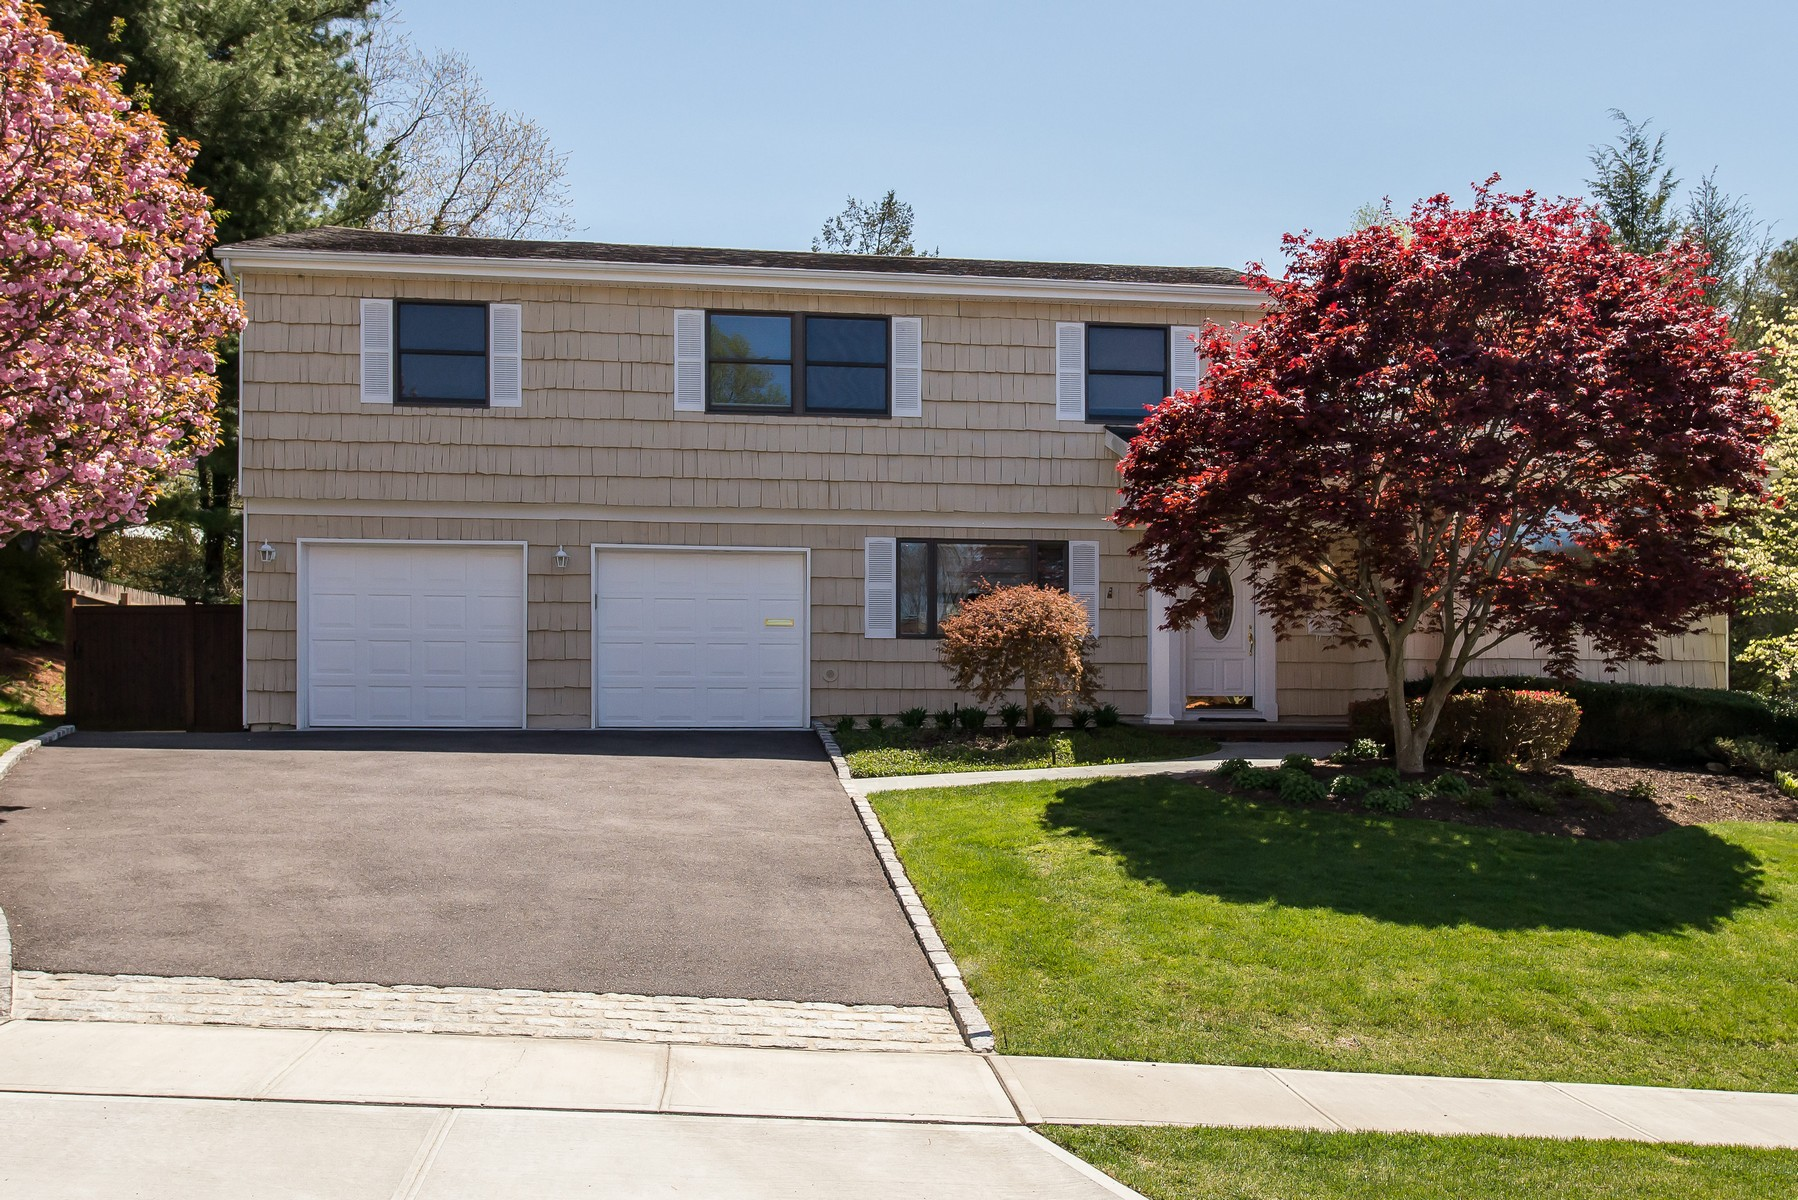 Single Family Homes for Sale at Oyster Bay 8 Peerless Dr Oyster Bay, New York 11771 United States